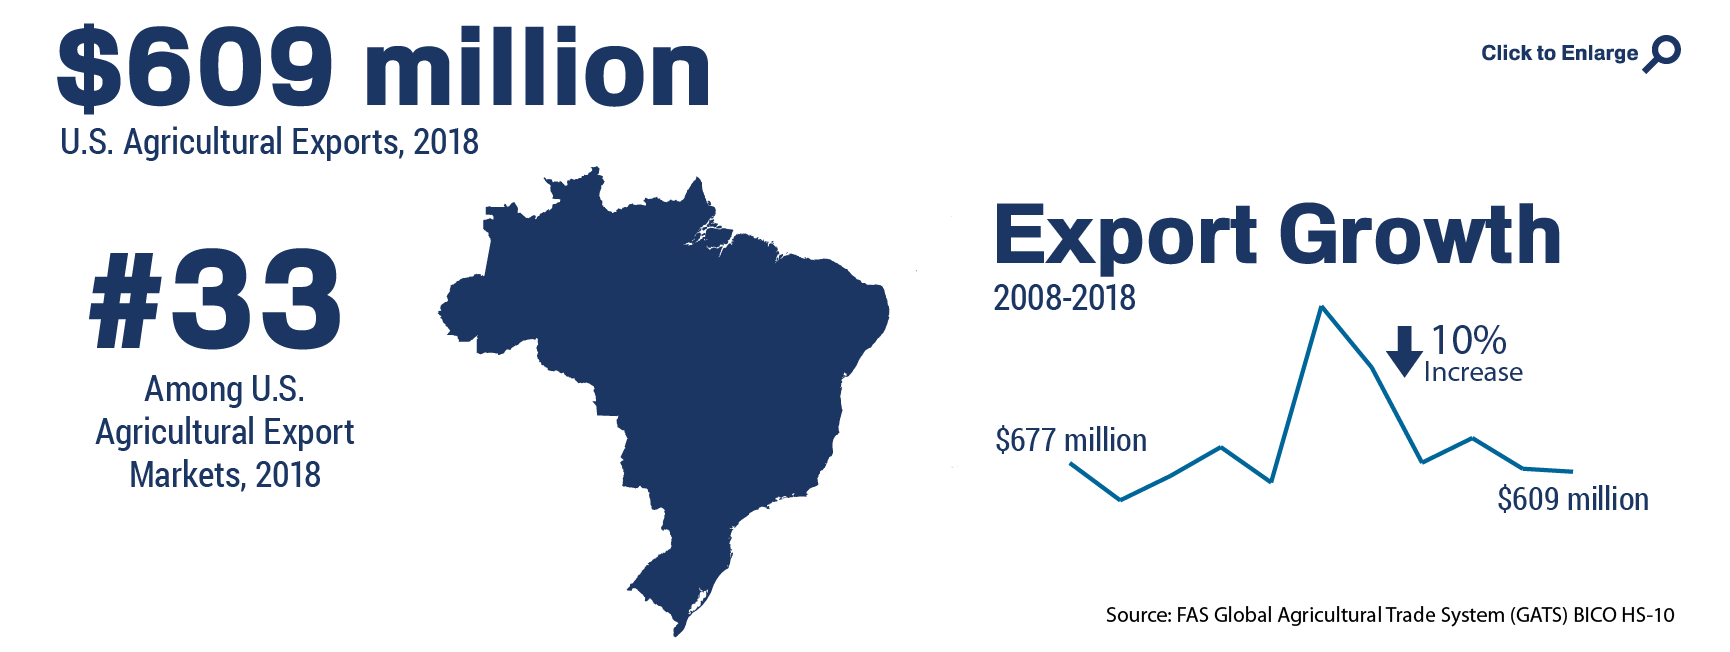 Infographic showing the ranking and total of U.S. agricultural trade to Brazil in 2018